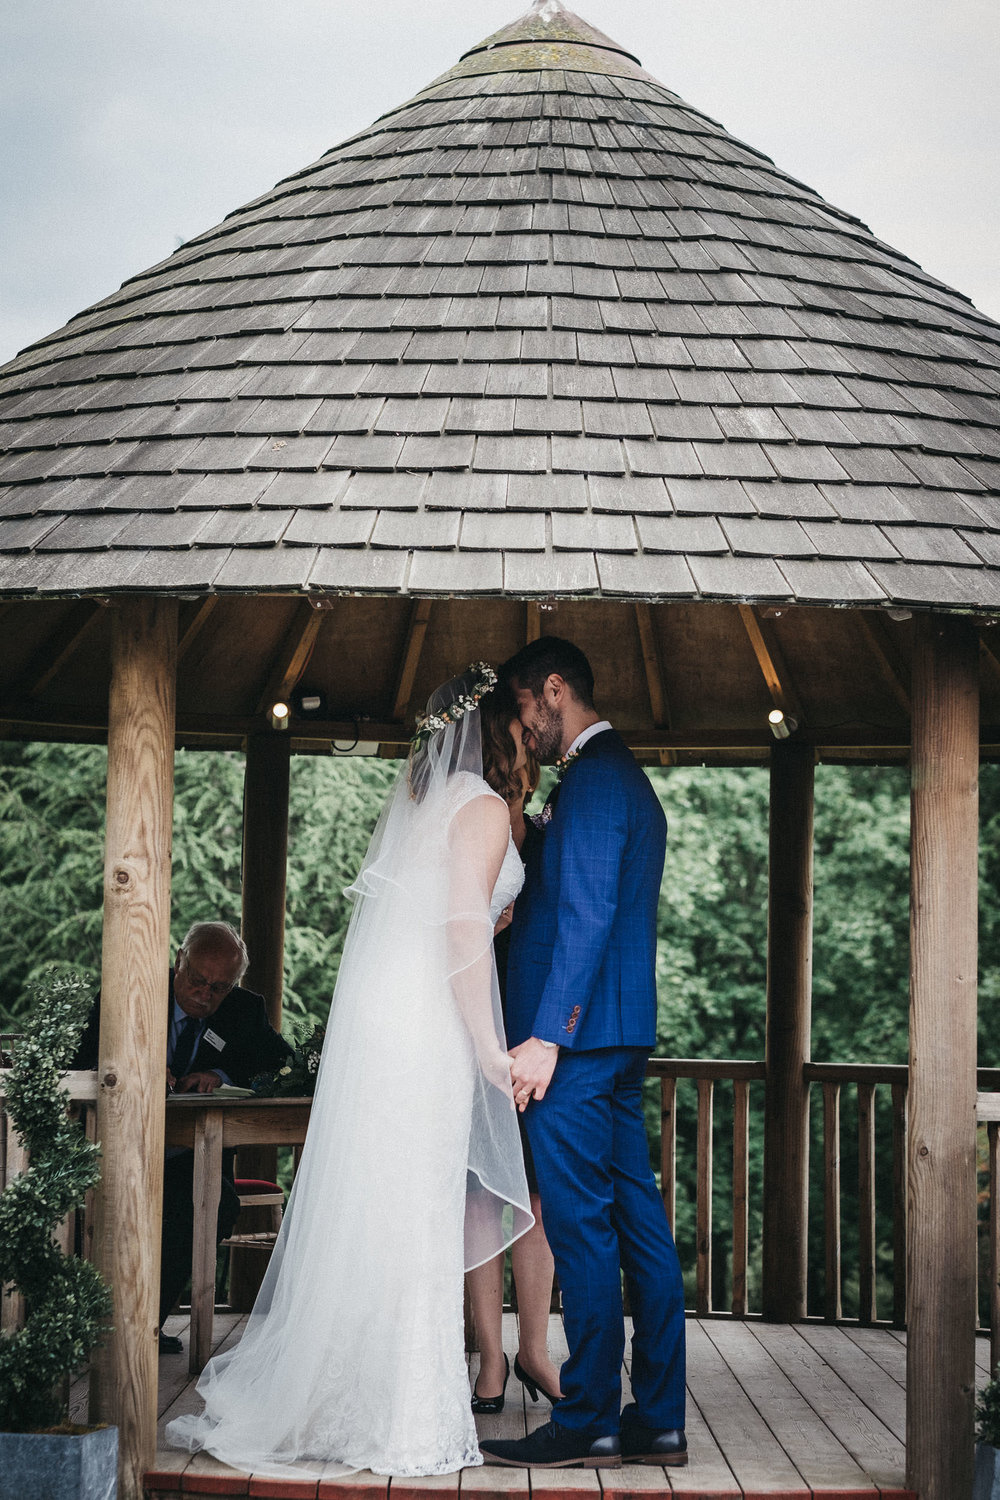 Bride and groom kiss in gazebo during wedding ceremony